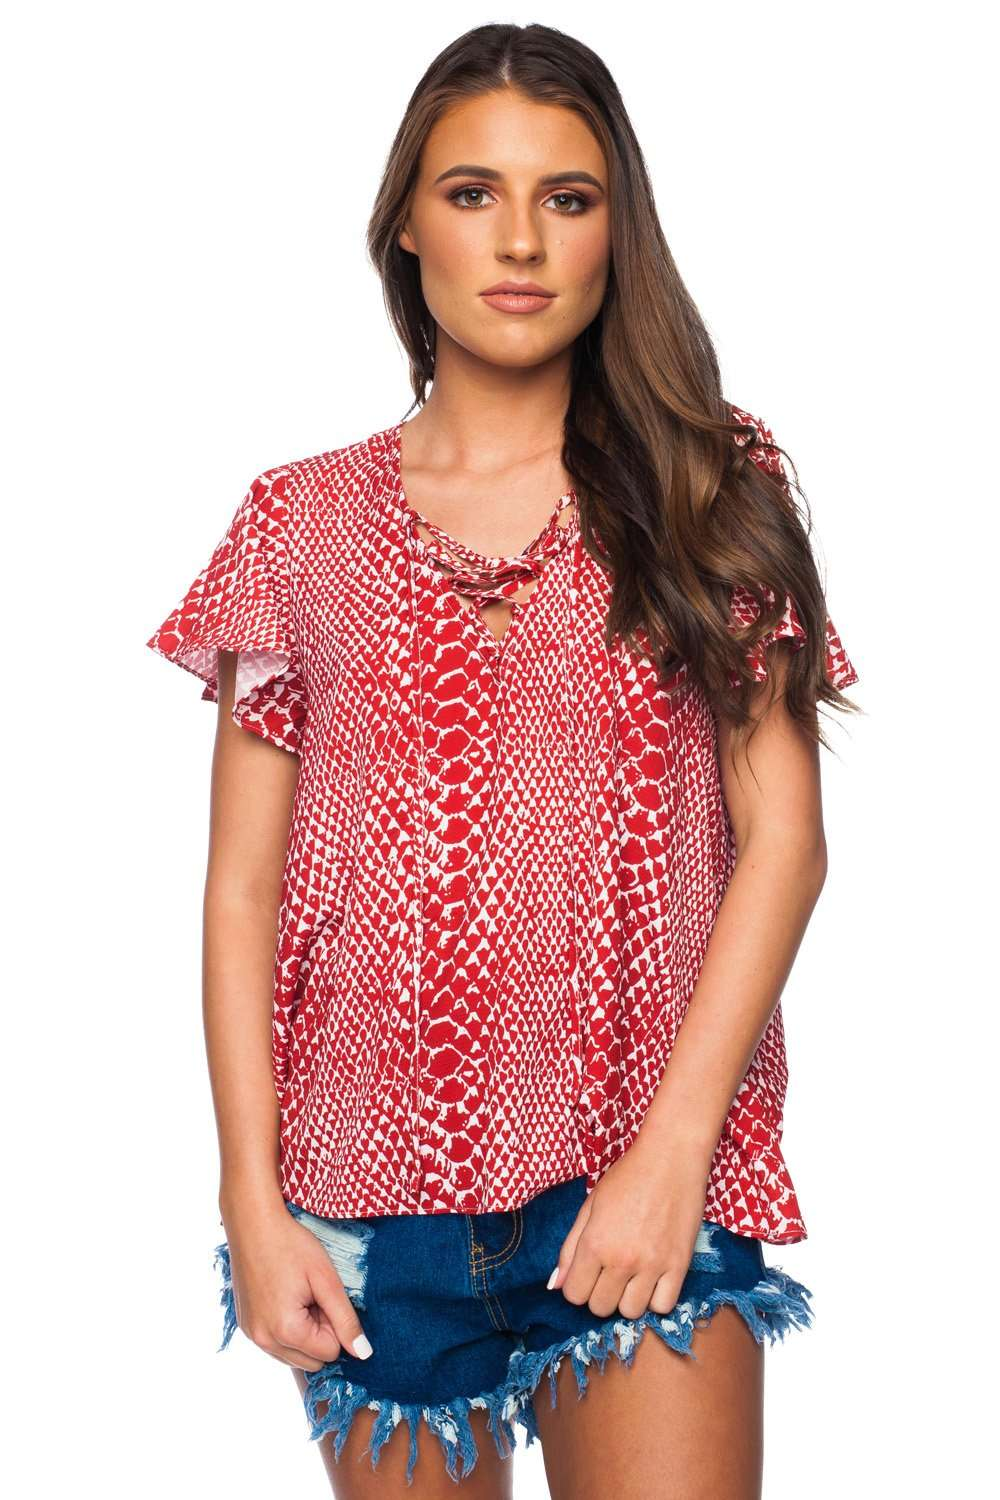 BuddyLove_Unity_Laced_Up_Short_Sleeved_Top__Crimson__XS_Red